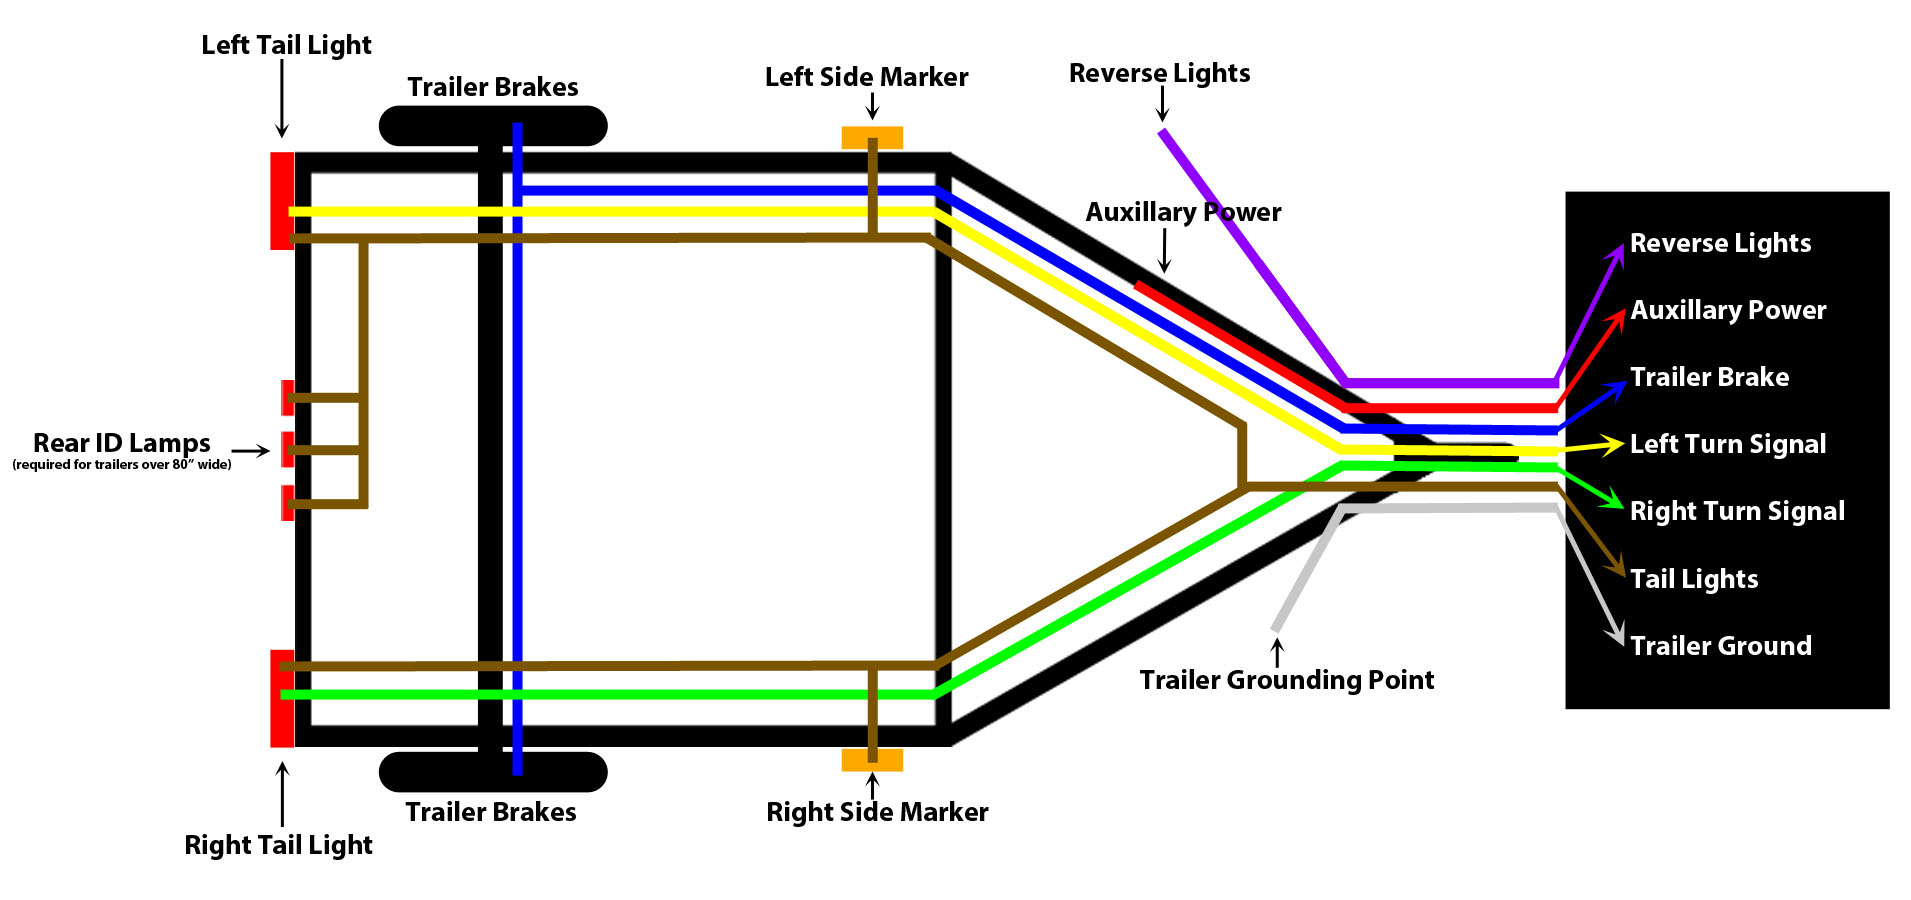 5 Wire Trailer Plug Diagram - Wiring Diagram Detailed - Trailer Wiring Diagram 6 Wire